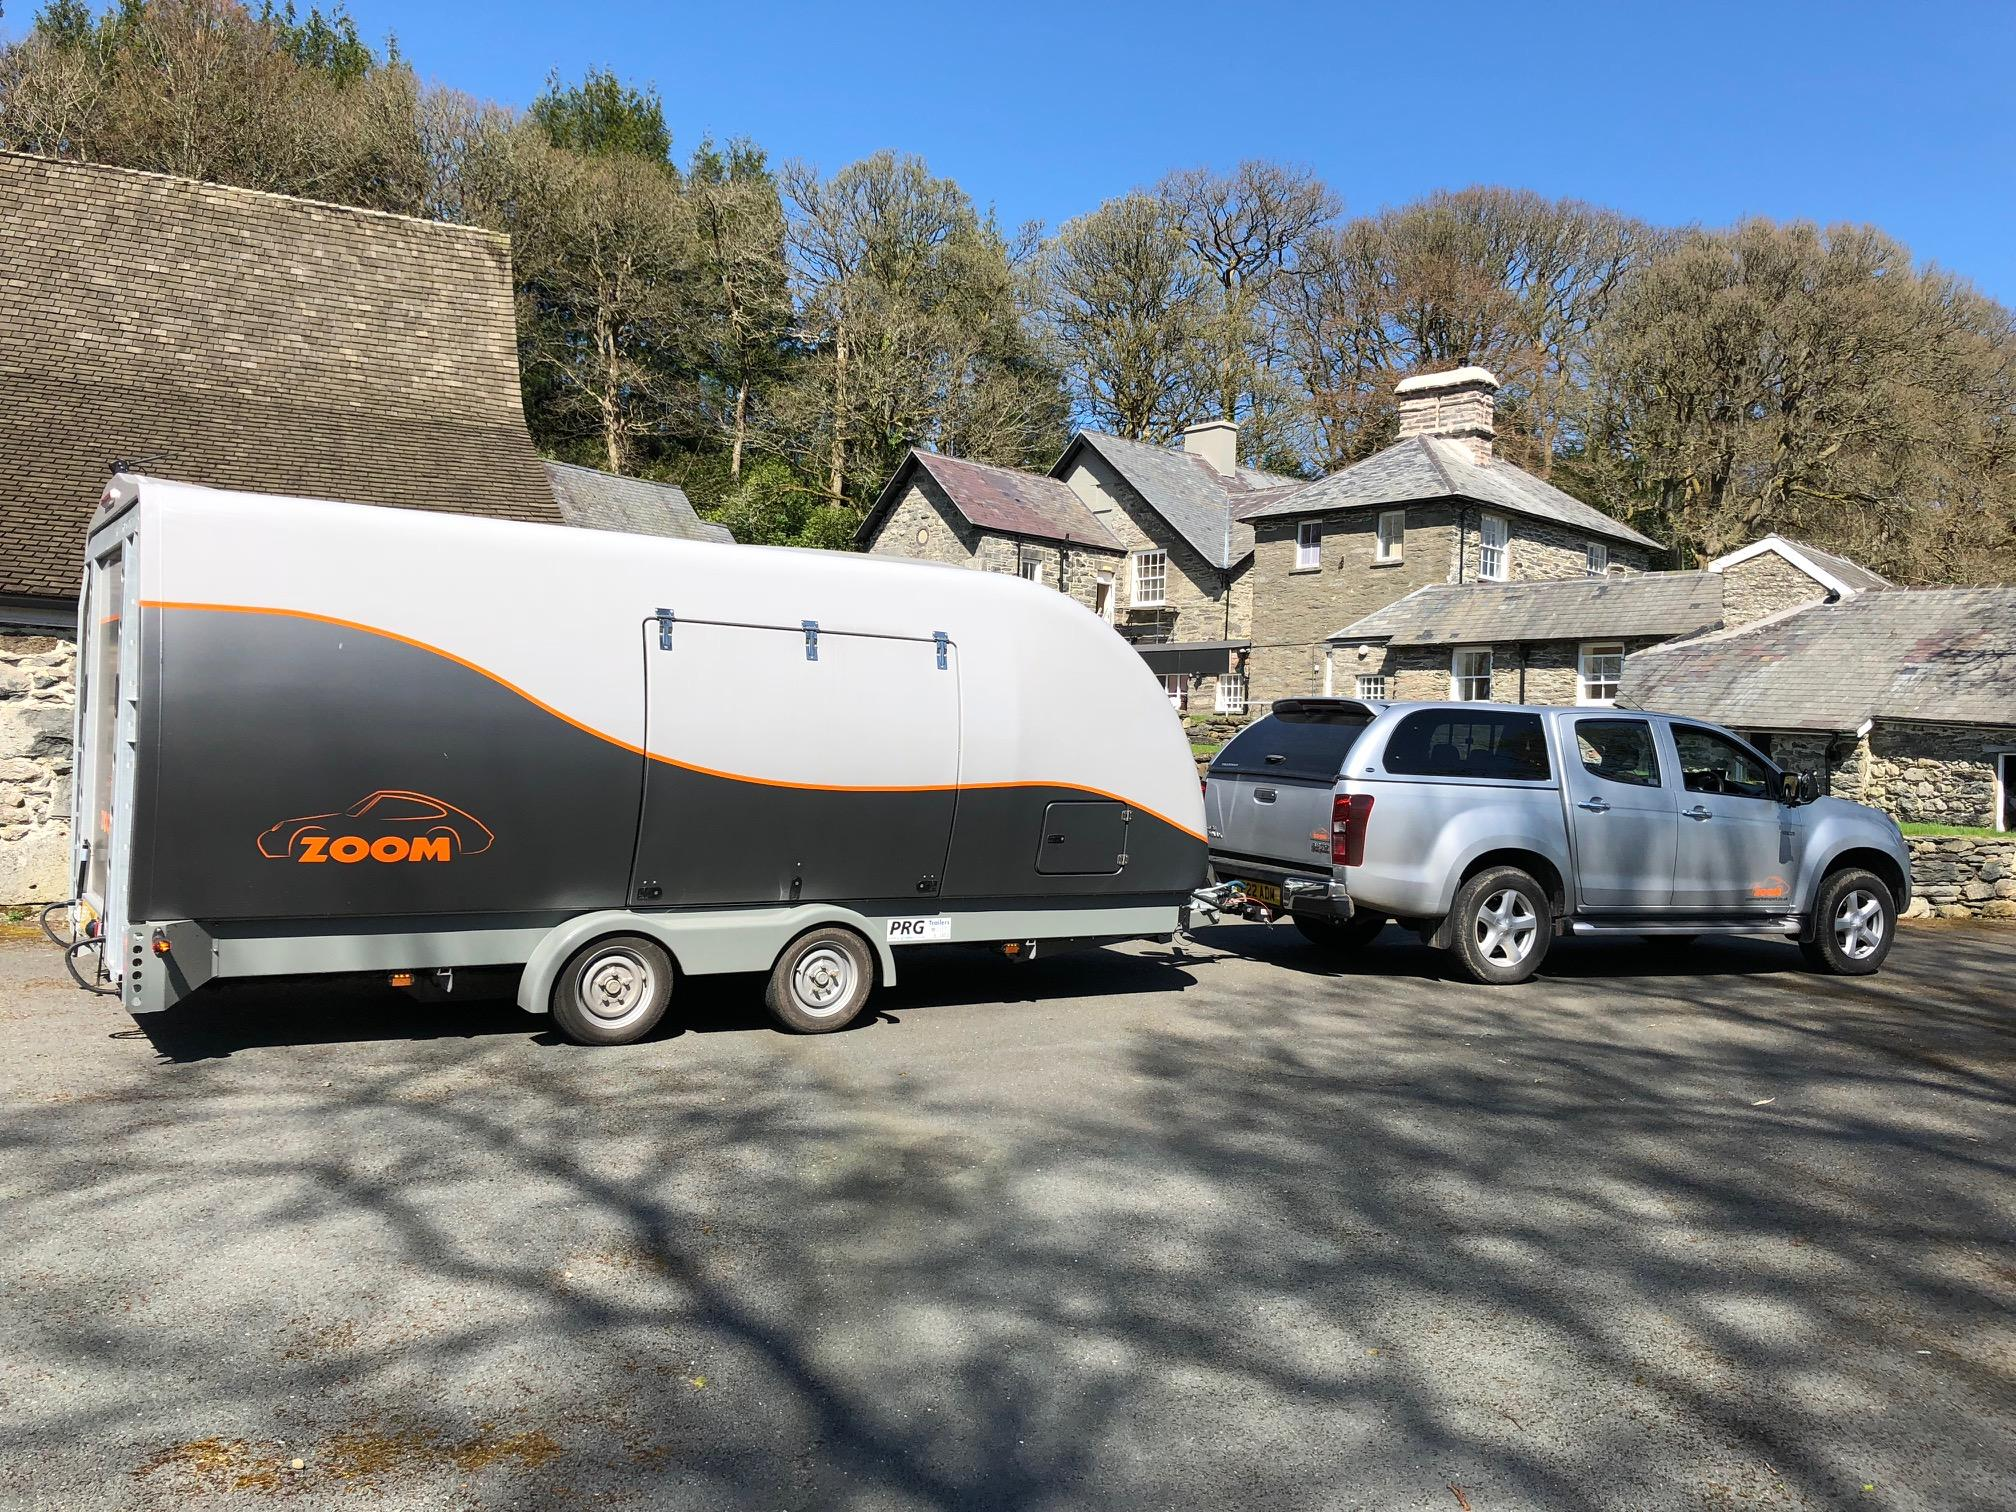 Zoom enclosed vehicle trailer